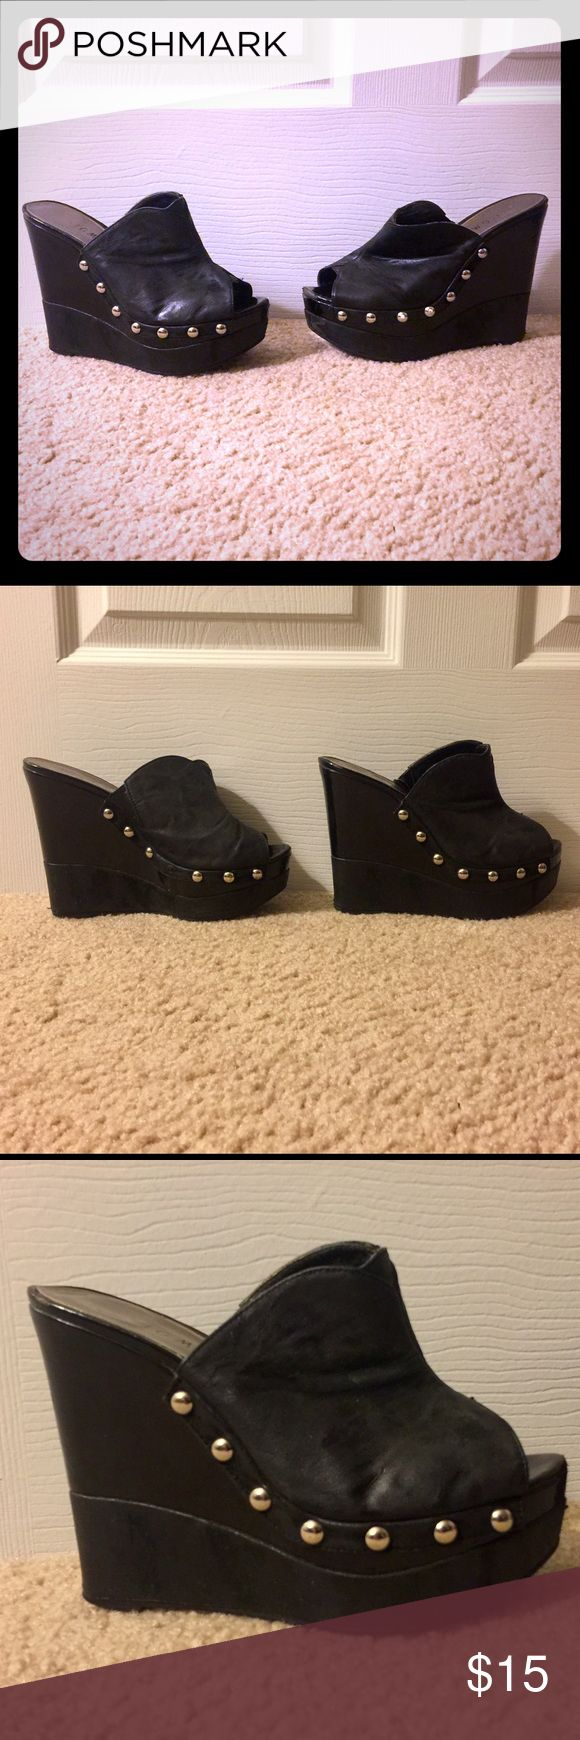 Black Platform Wedge Sandals Black Platform Wedge Sandals with Silver Studs. Some wear, but still in great condition. These are VERY comfortable, I just can no longer wear them. Shoes Wedges